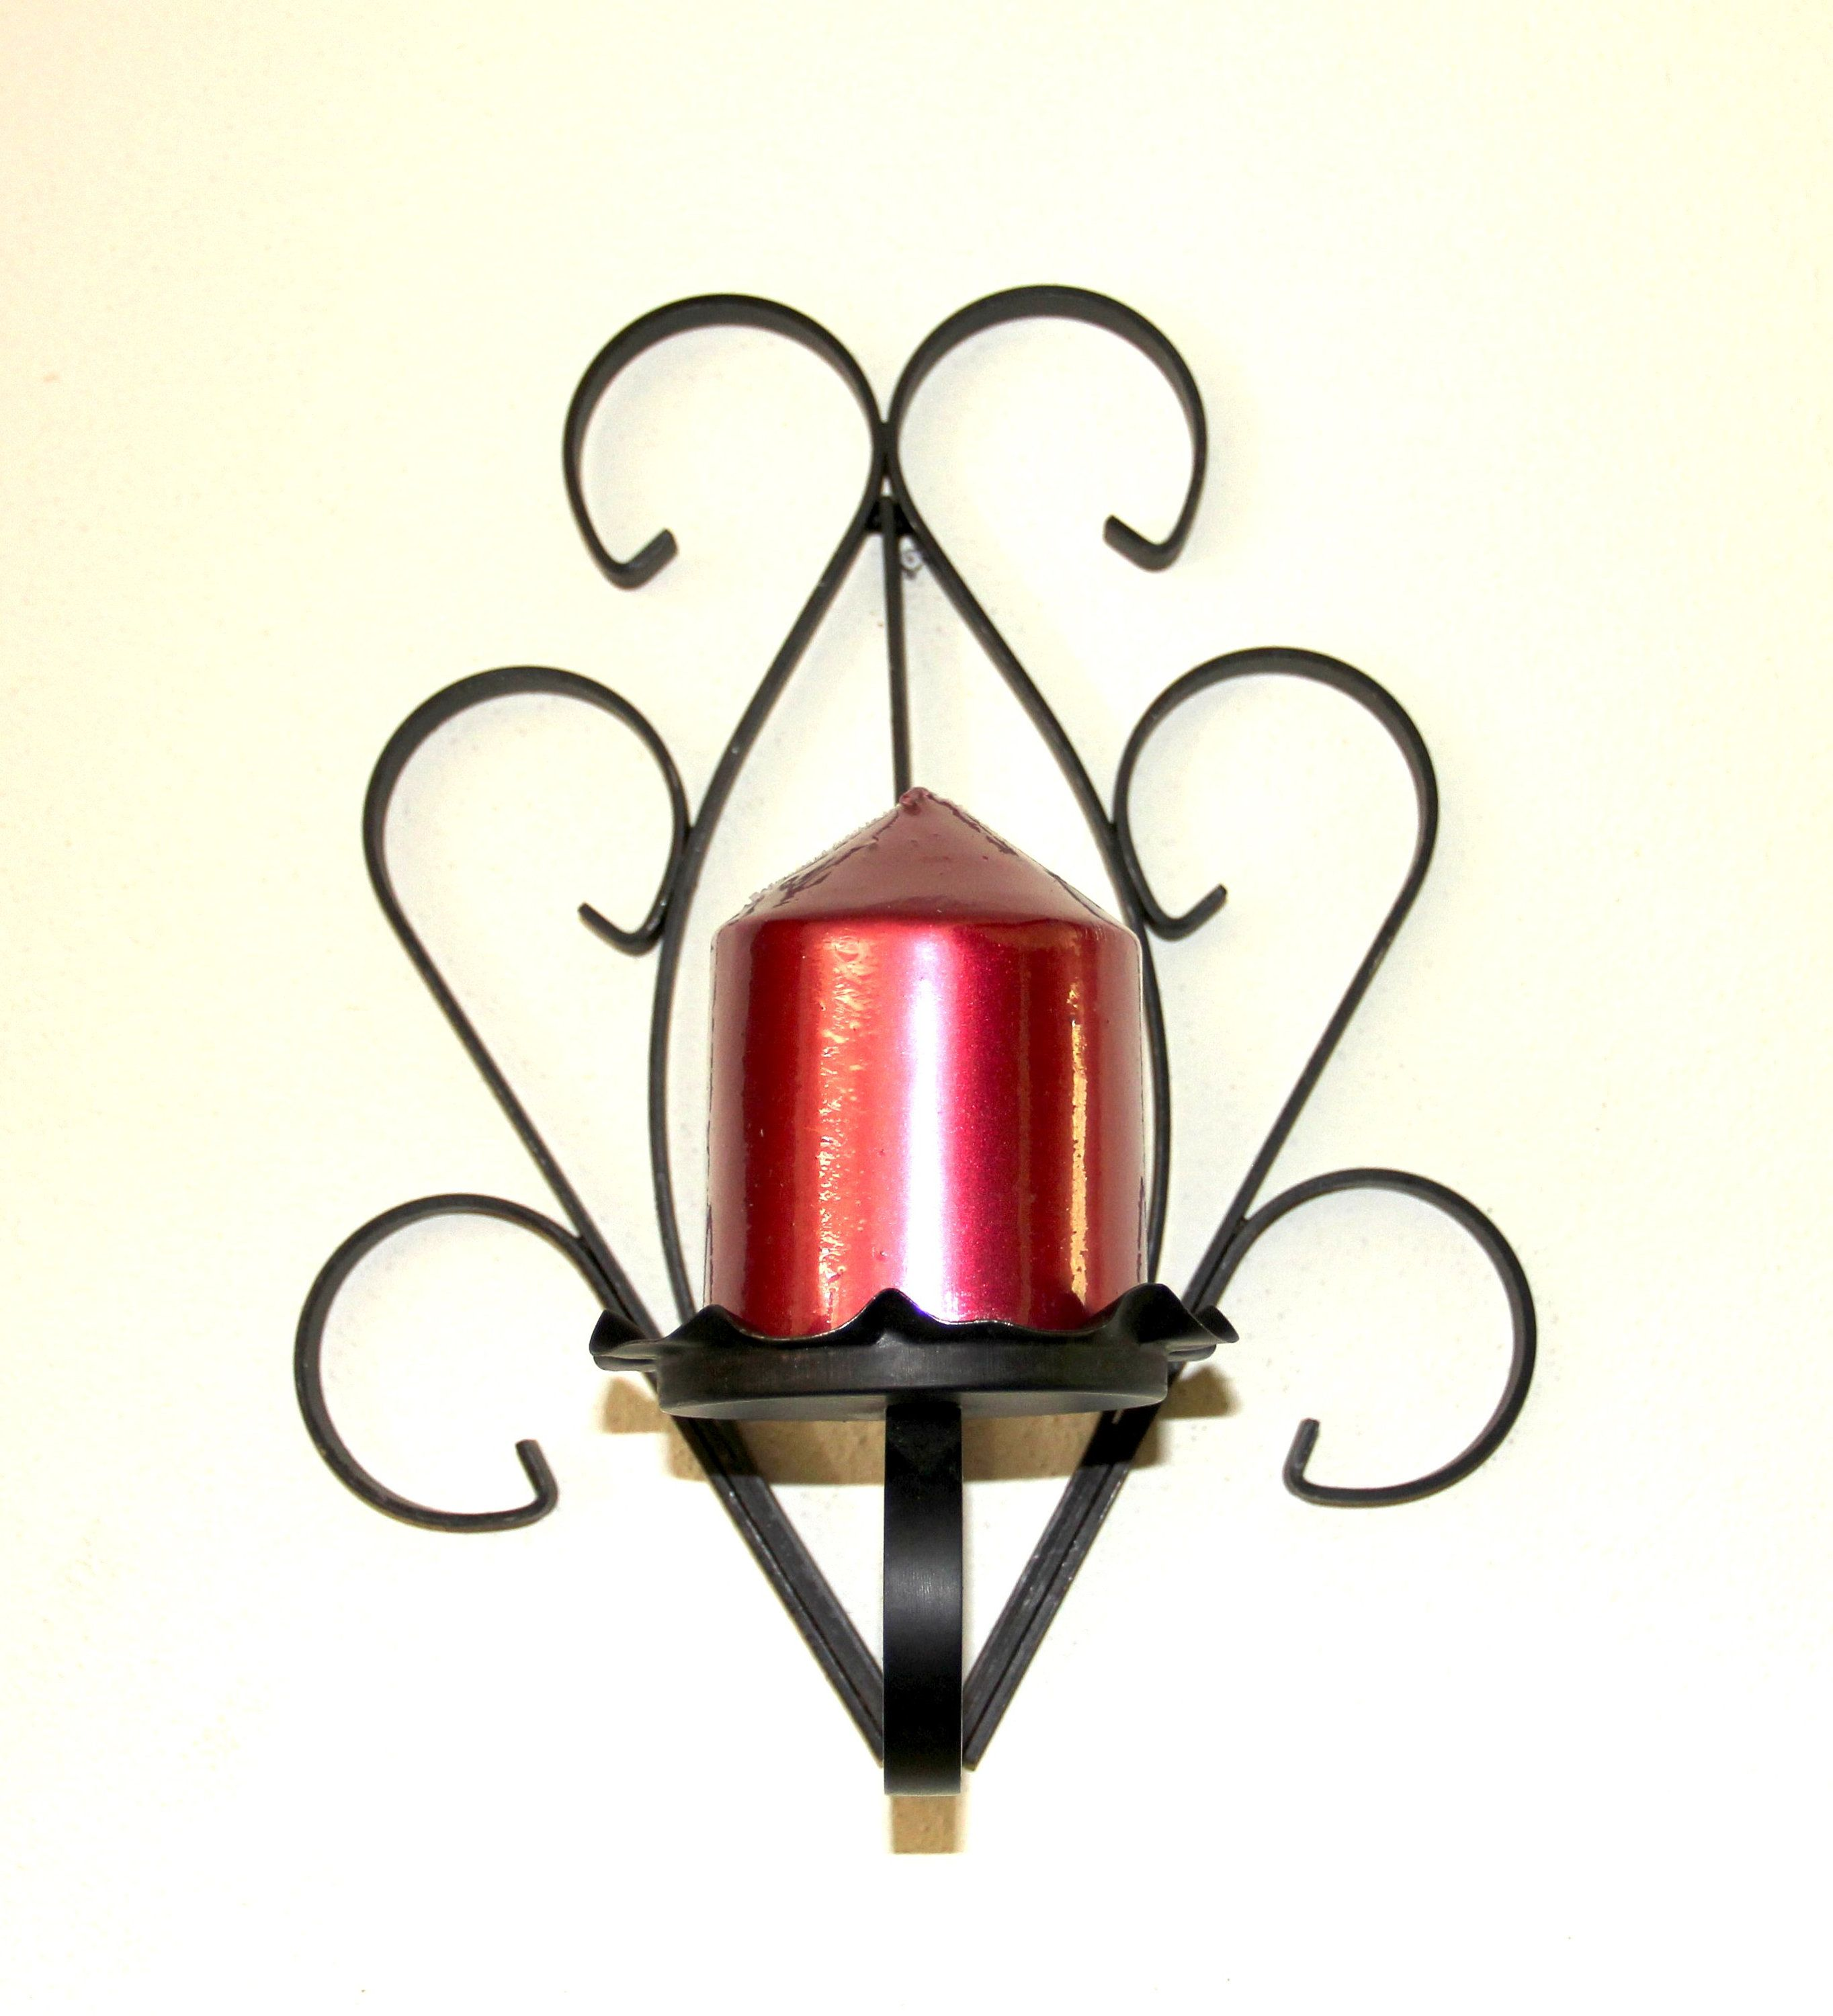 70s Black Wrought Iron Wall Sconce Candle Holder Sconce Vintage